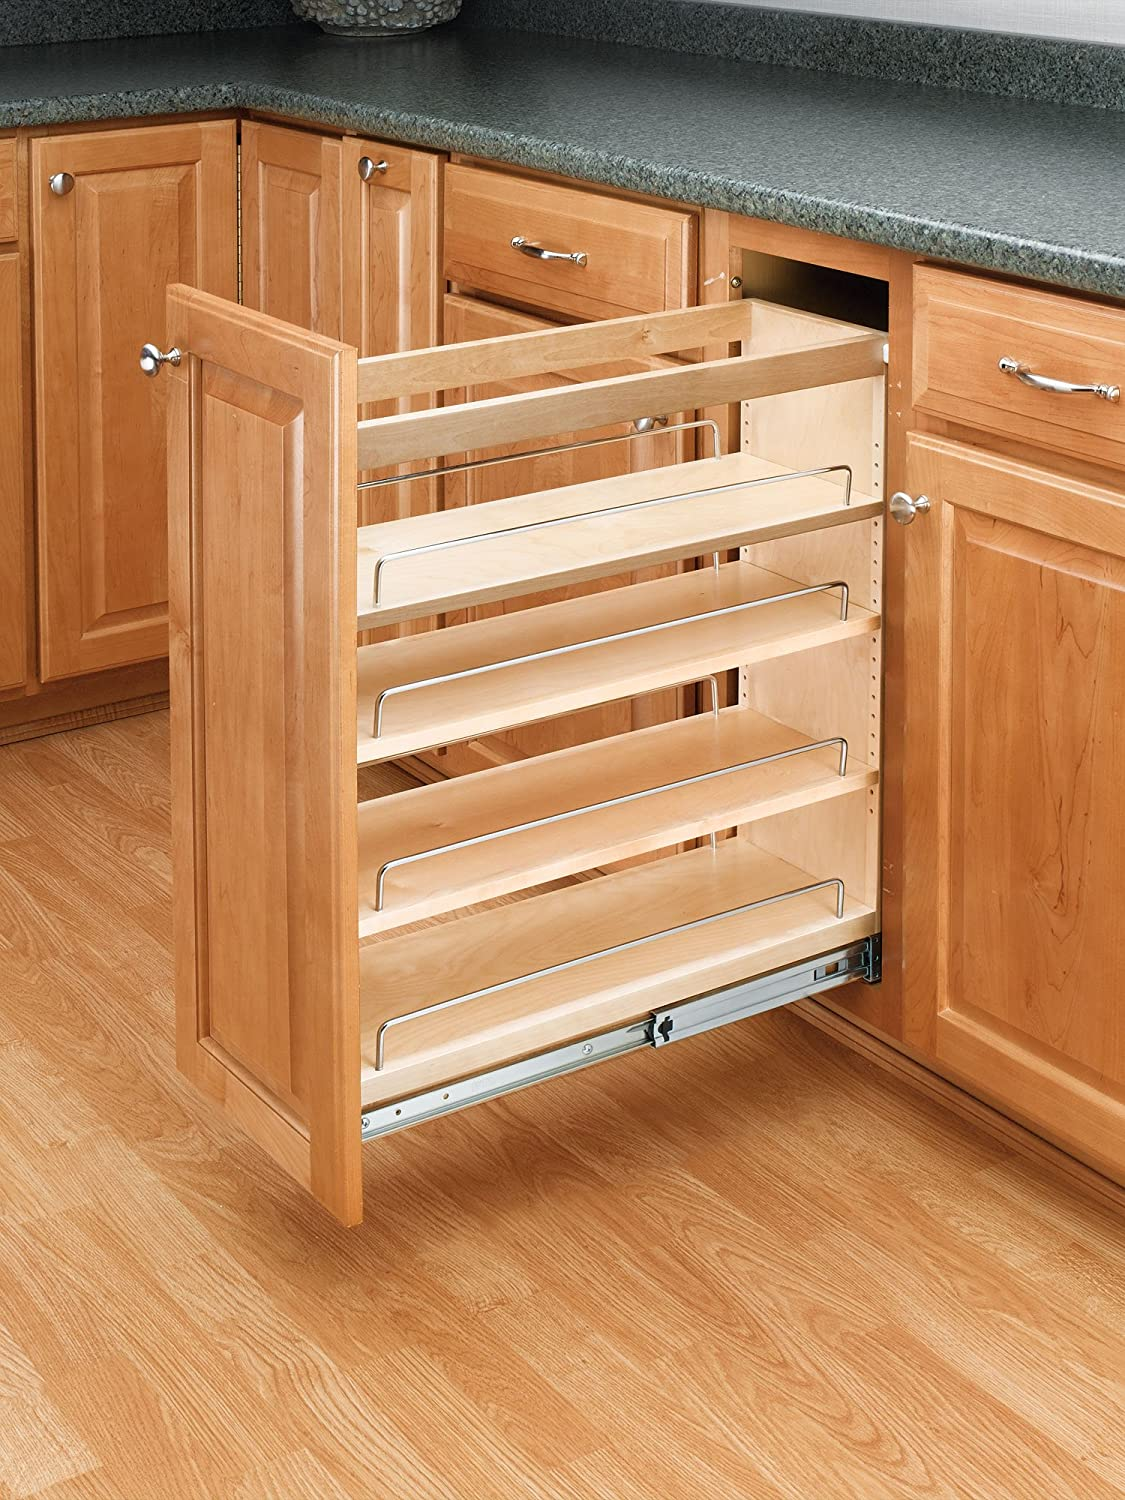 Kitchen Base Cabinet Pull Outs Part - 47: Amazon.com: Rev-A-Shelf - 448-BC-5C - 5 In. Pull-Out Wood Base Cabinet  Organizer: Home U0026 Kitchen